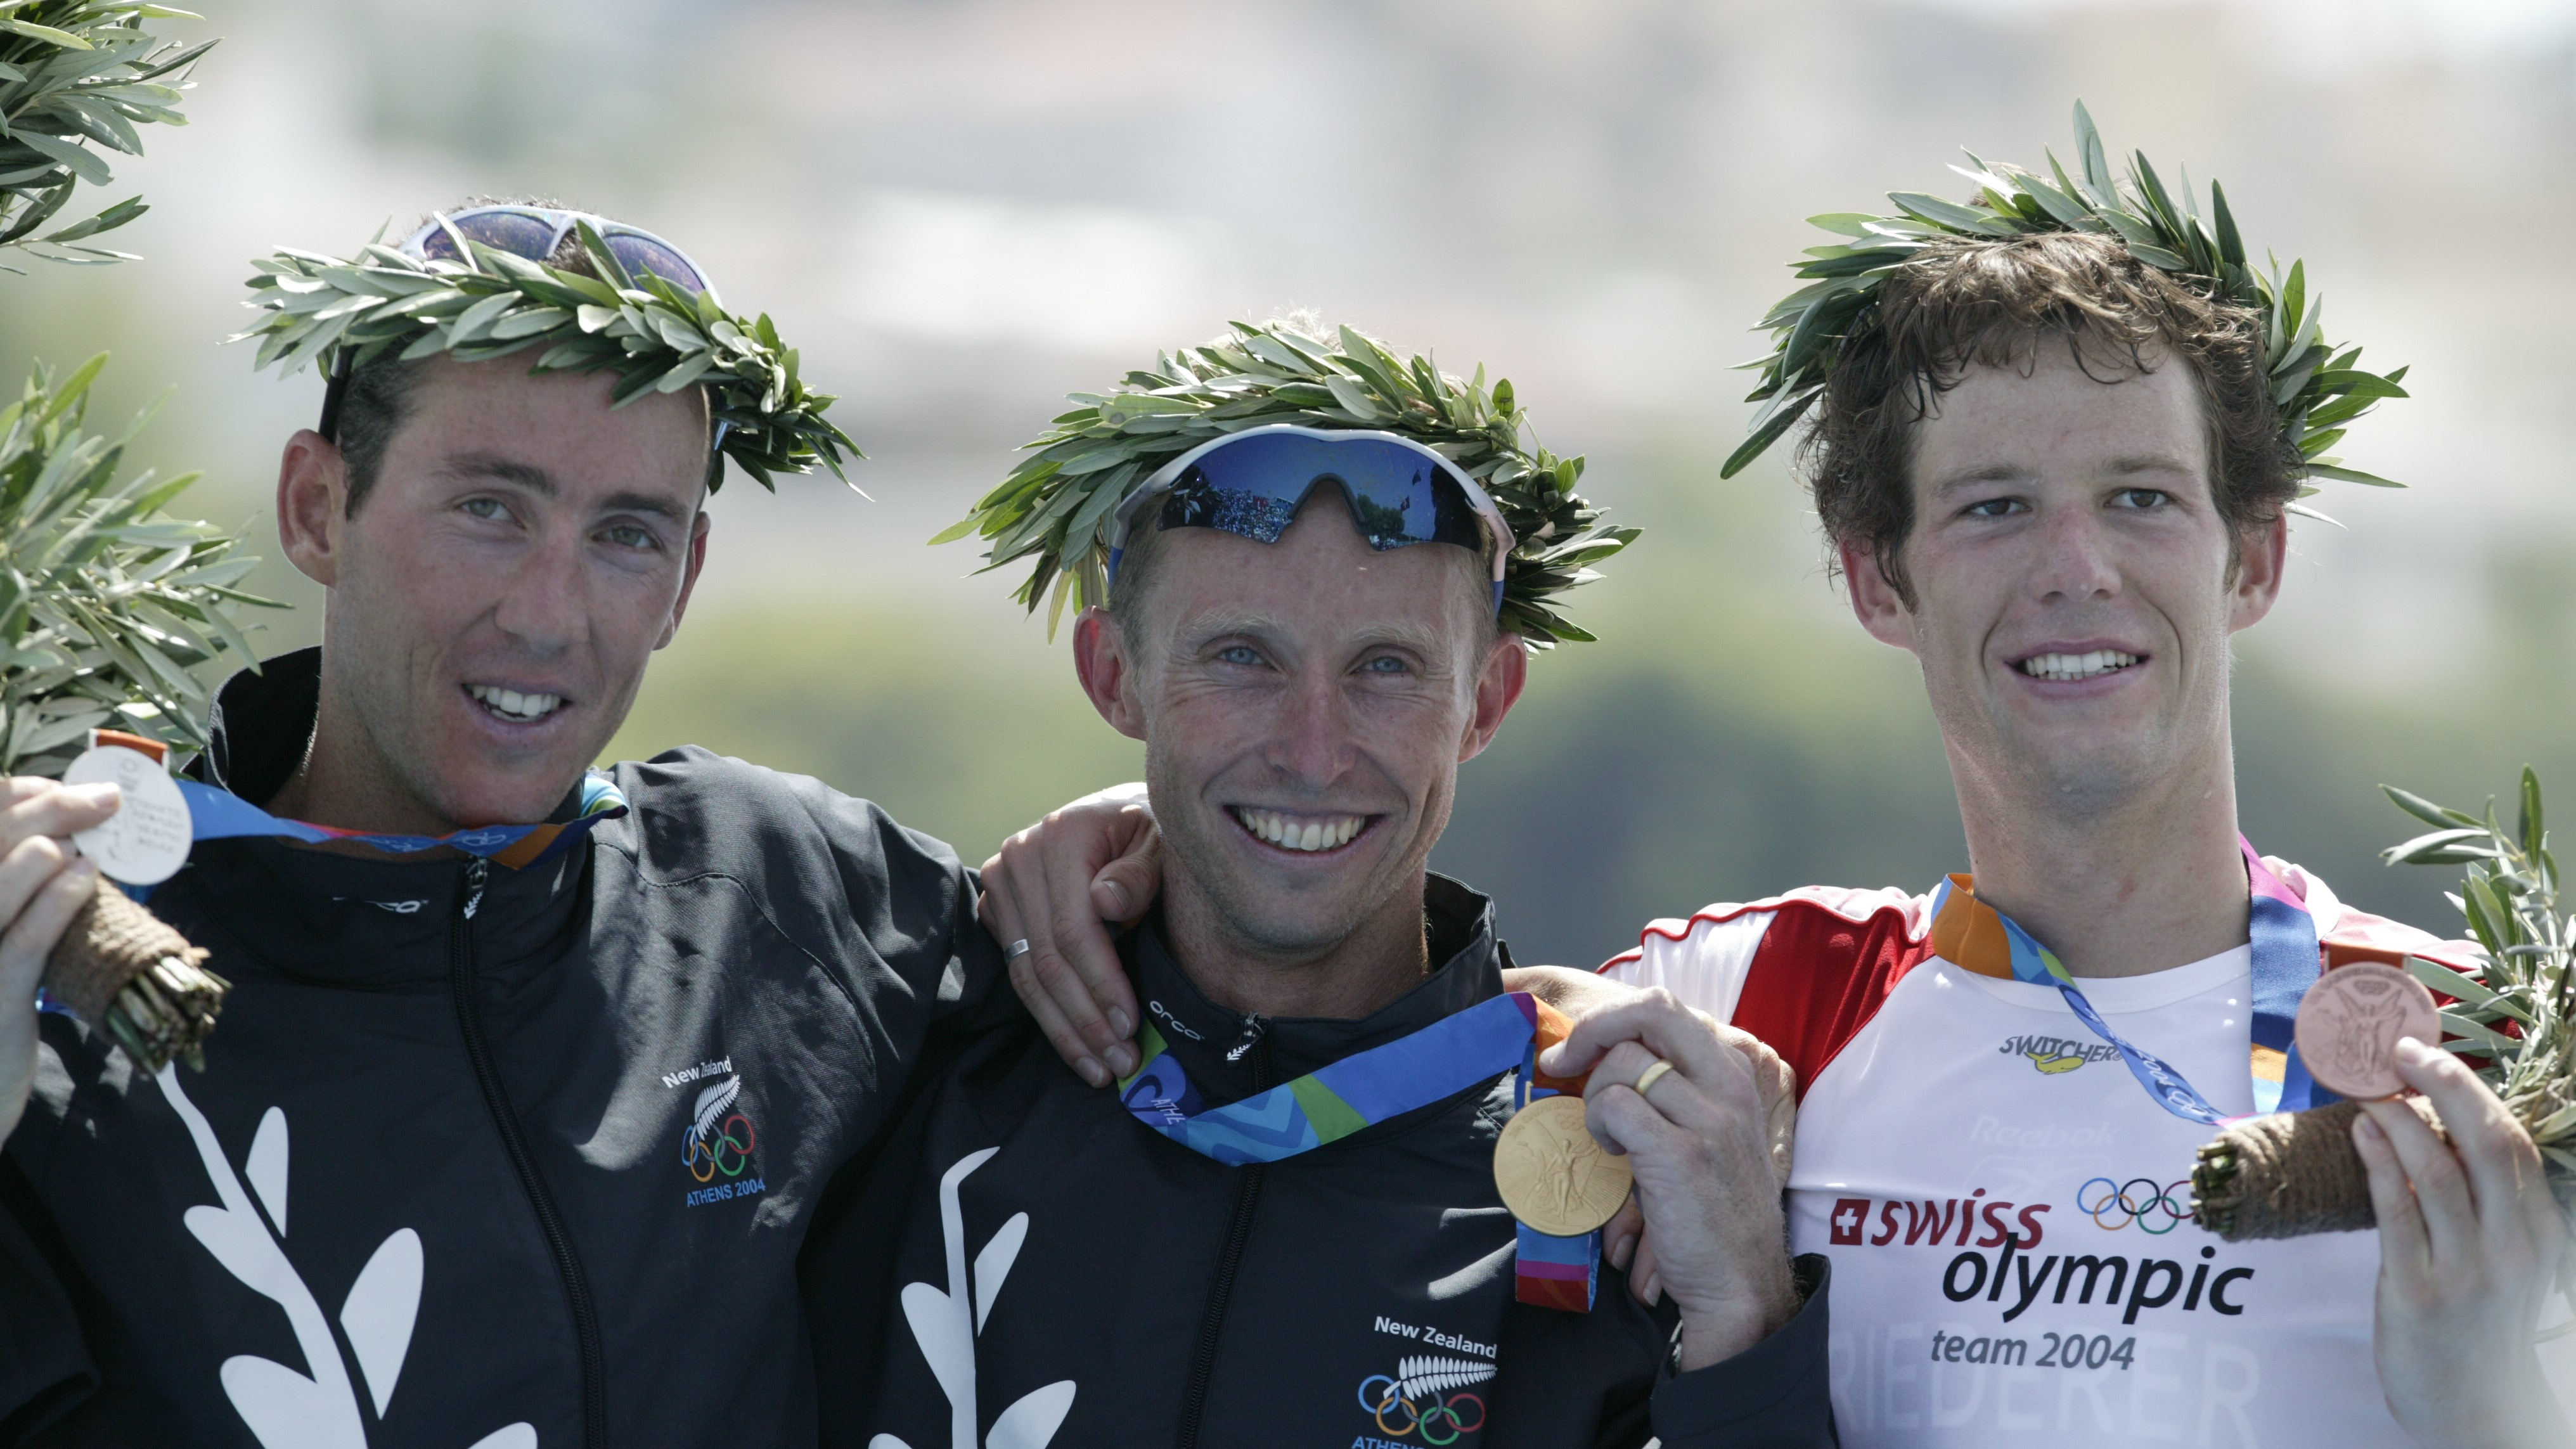 The 3 male medallists at the Athens 2004 Olympics: Jan Rehula (CZE) - Silver, Hamish Carter (NZL) - Gold, Sven Riederer(SUI) - Bronze